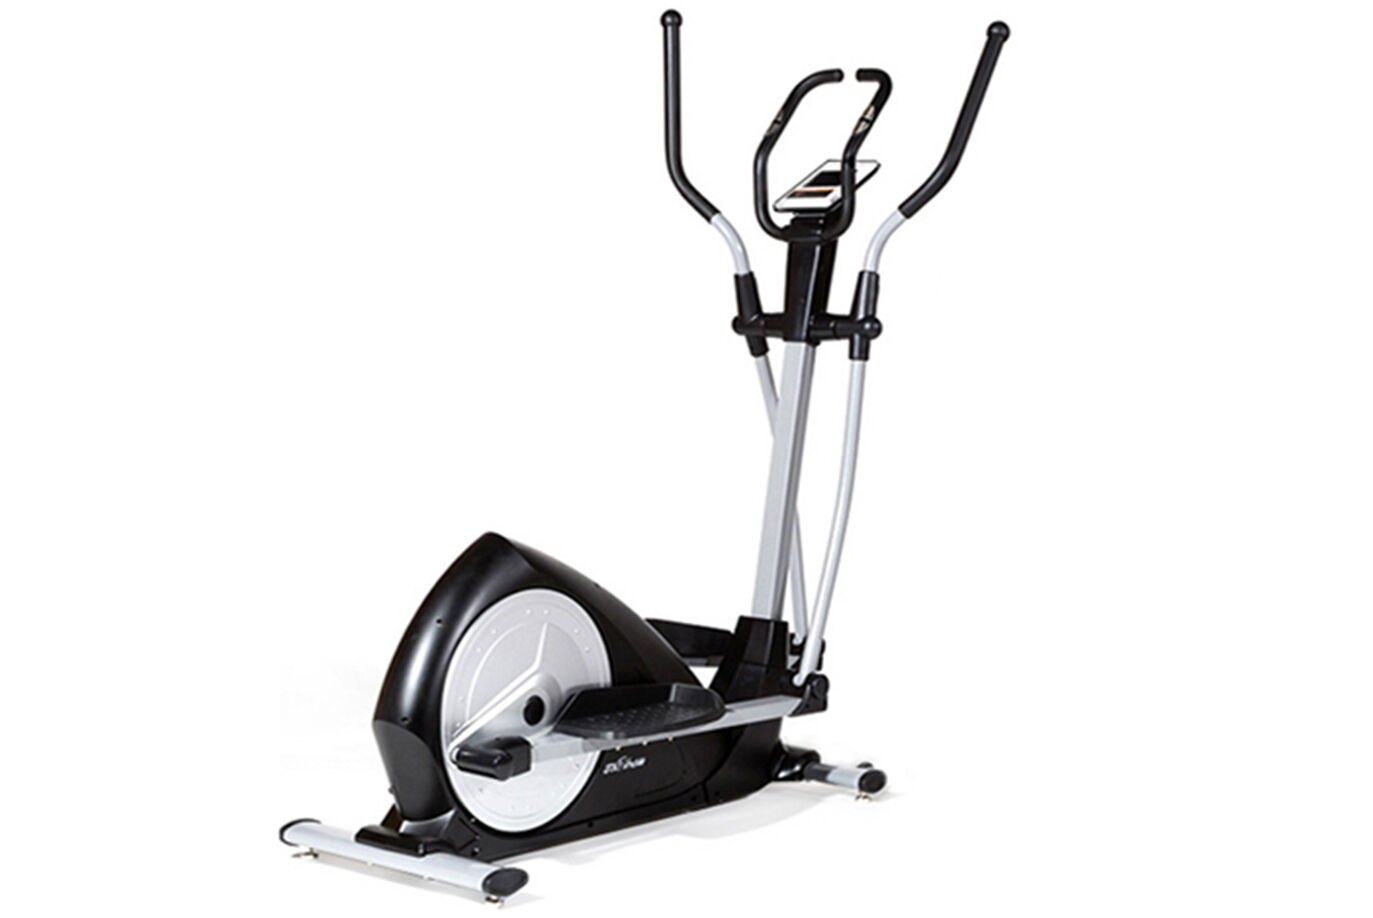 JTX Strider-X7 Compact Used Cross Trainer